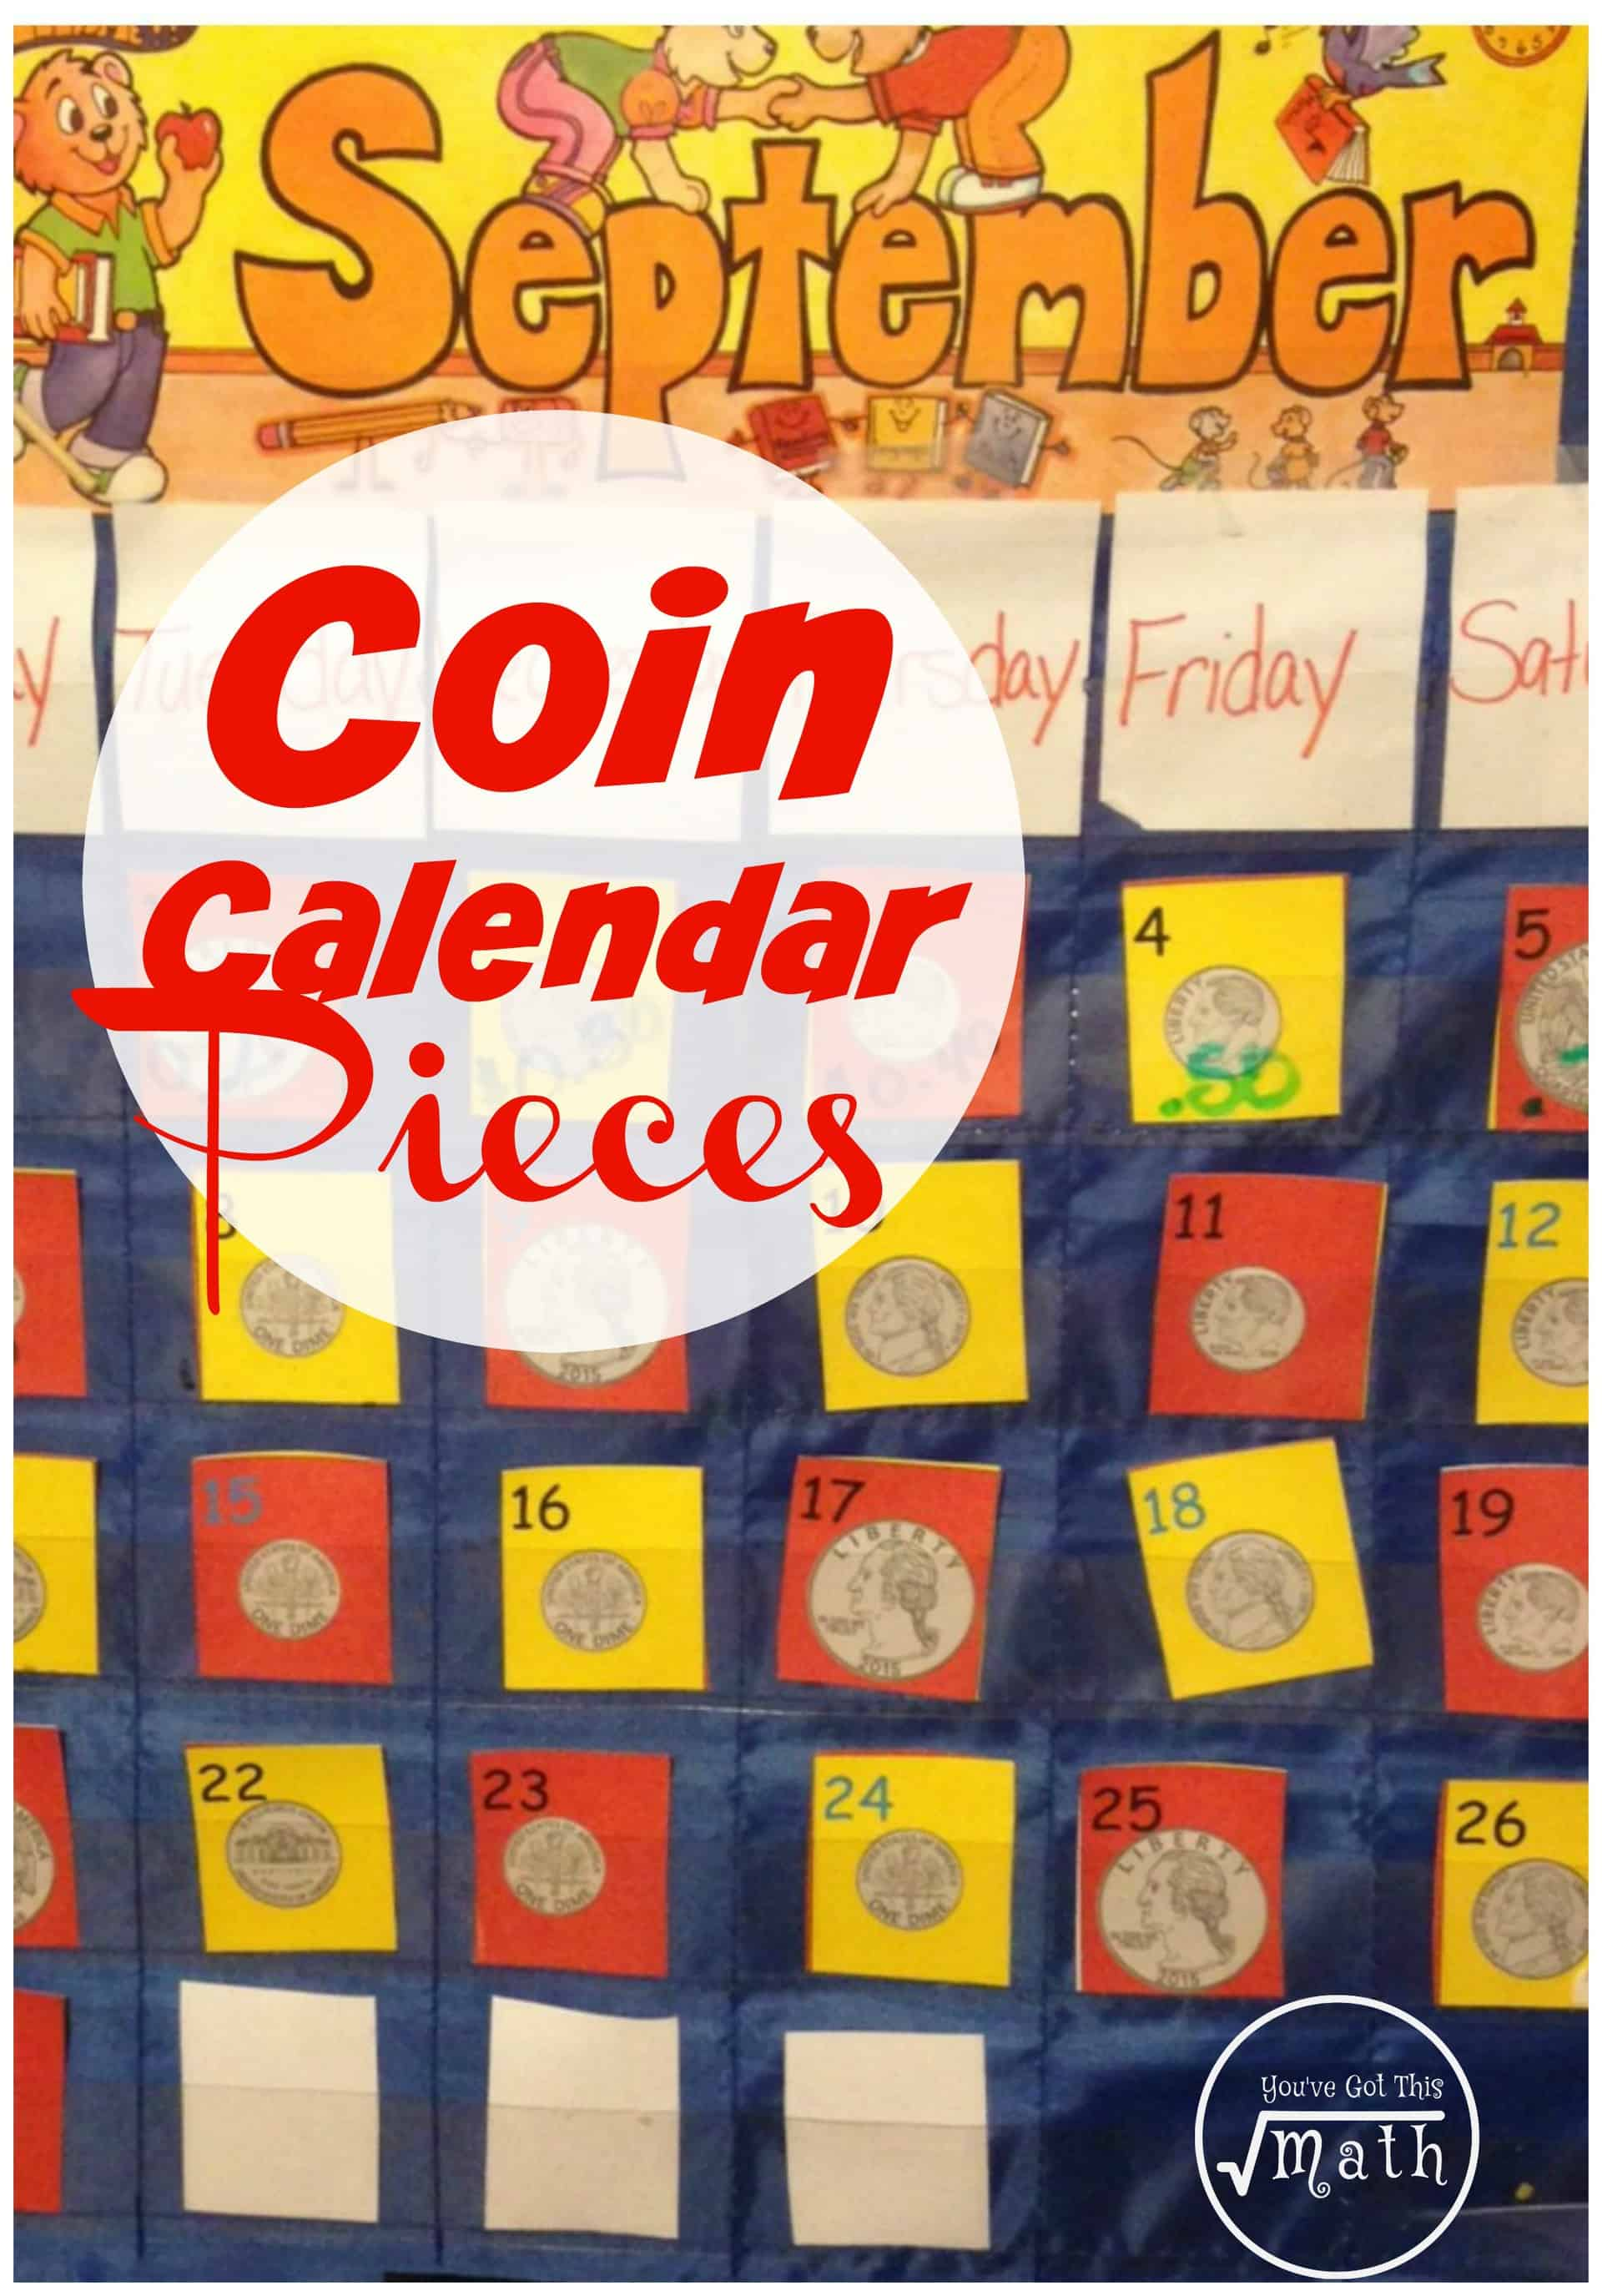 Work on coin identification, counting money, and patterns with these colorful calendar pieces for elementary students in first and second grade.